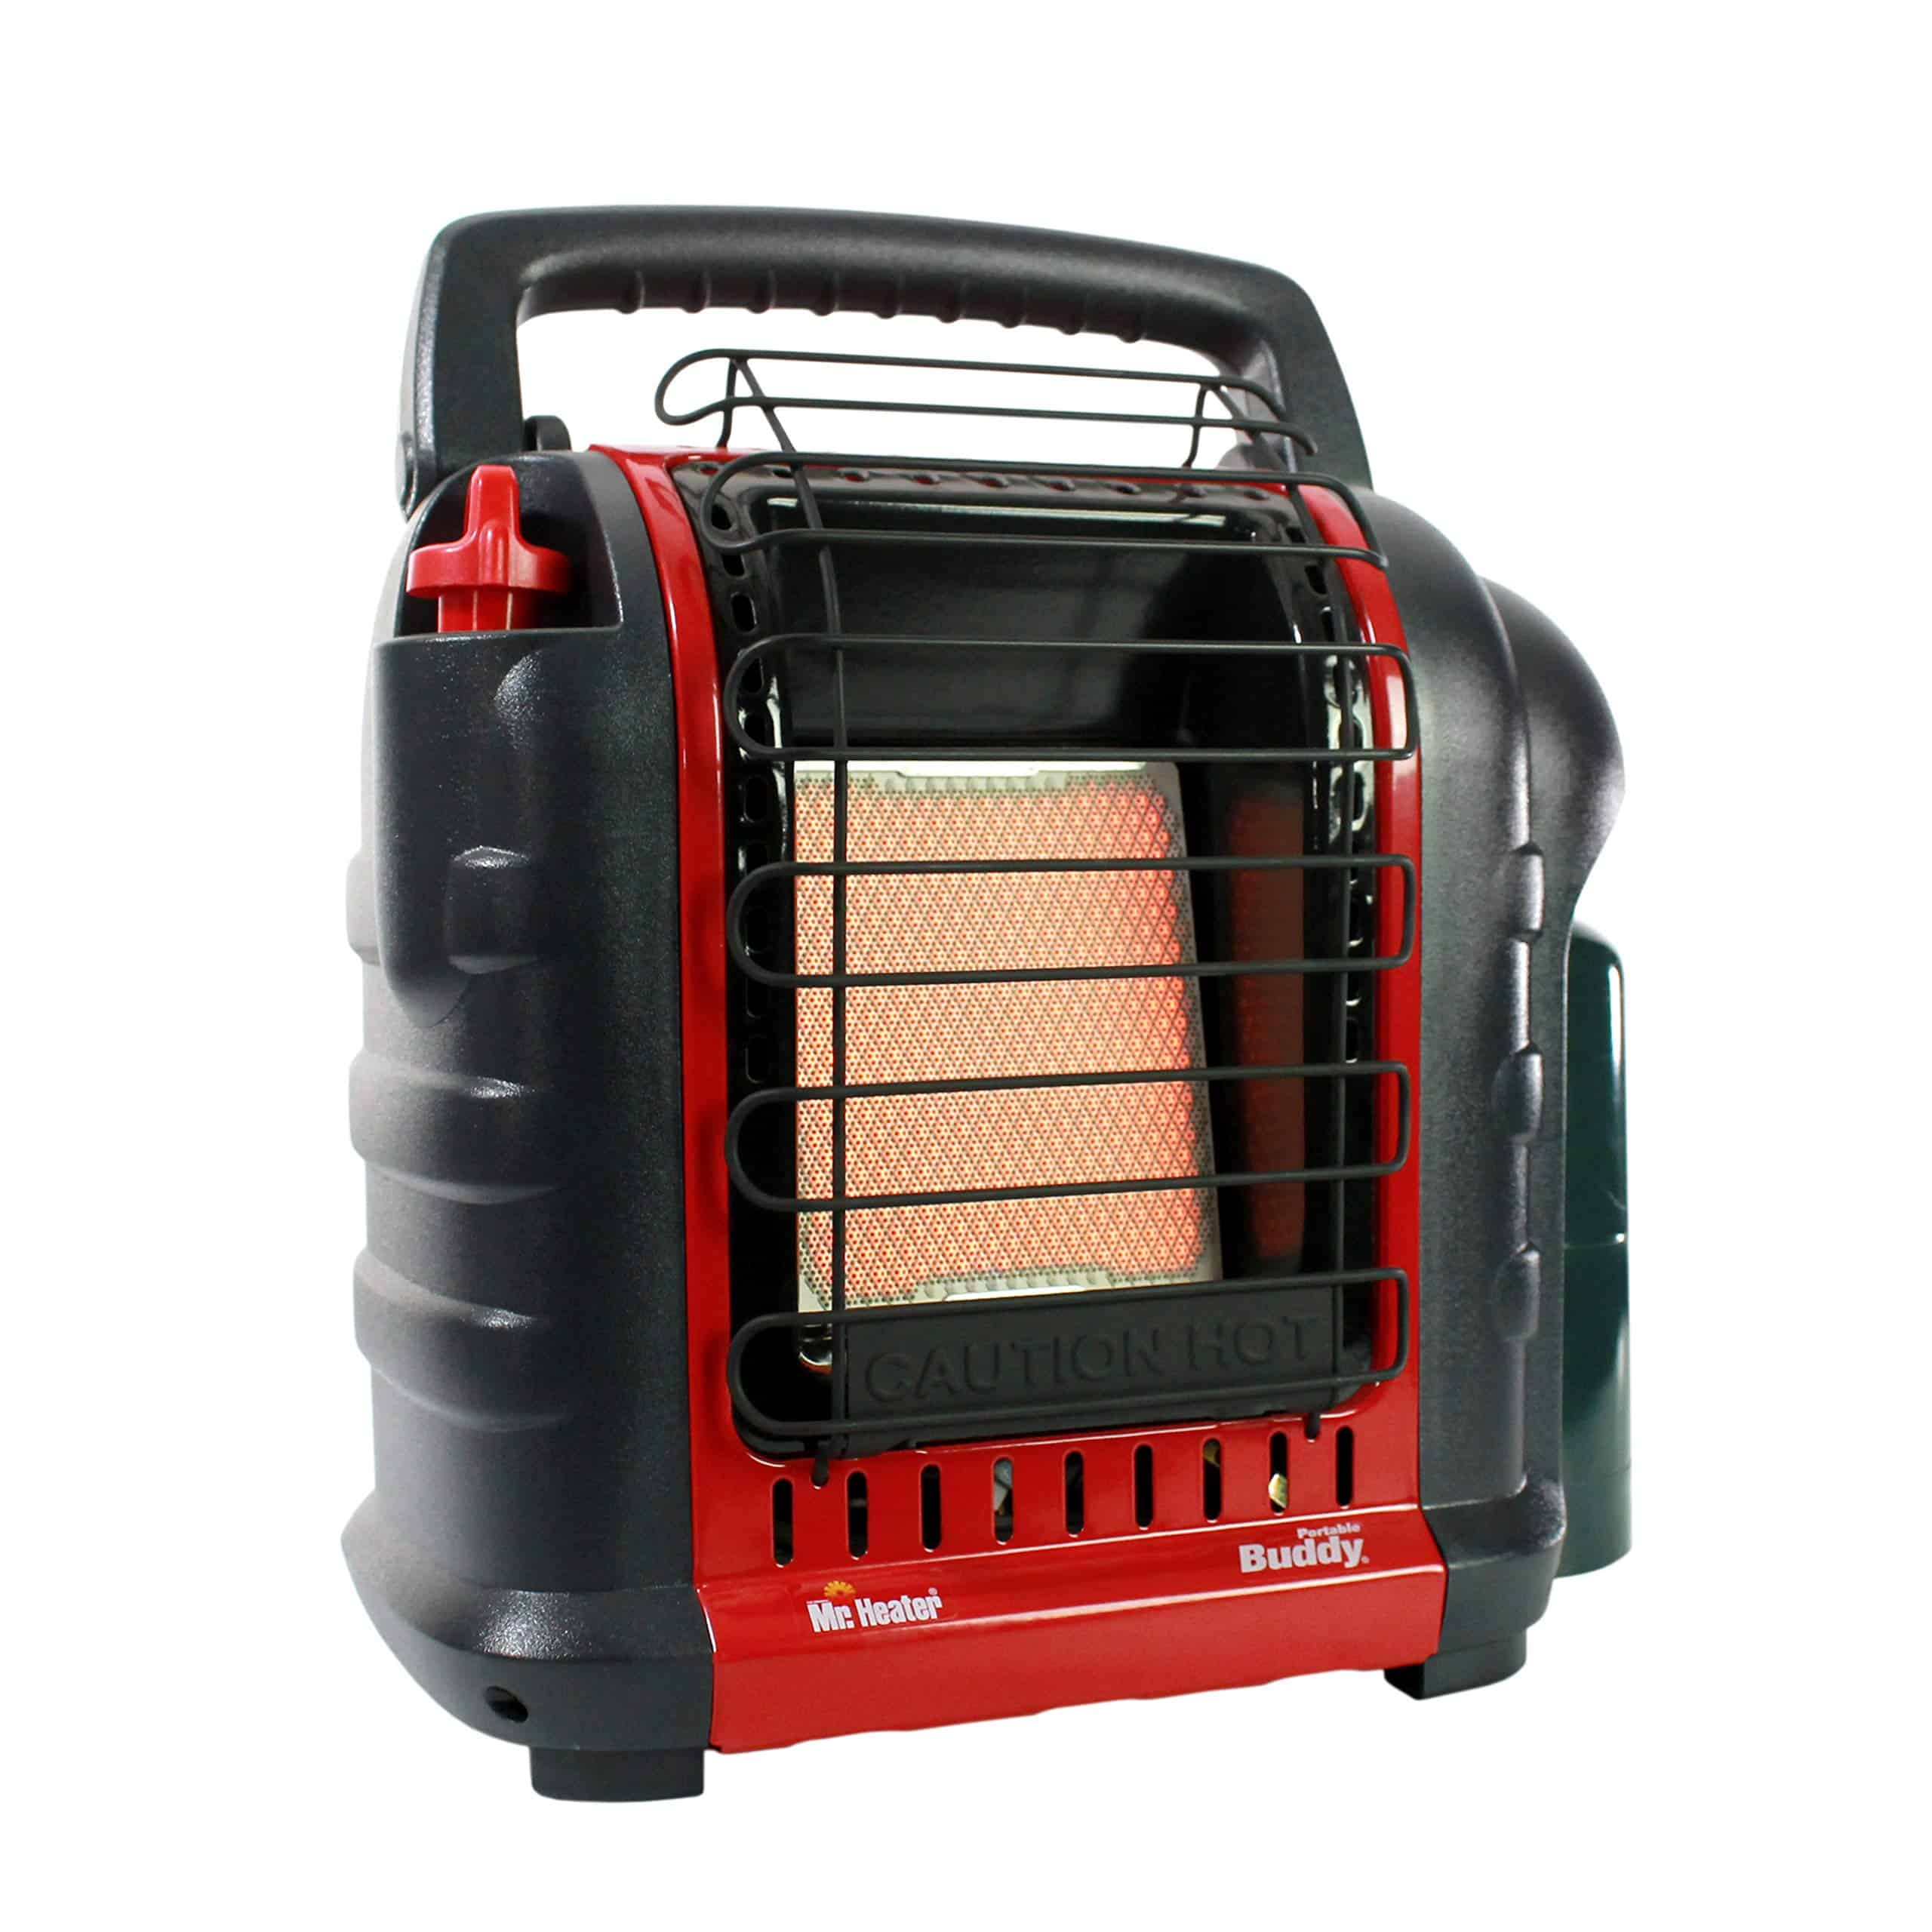 This is a 4,000 to 9,000 Btu radiant heater that you can use to warm areas as big as 225 square feet. The Mr. Heater F3200 MH9BX Portable Buddy is equipped with an oxygen sensor that automatically shuts the device off if the levels get too low.